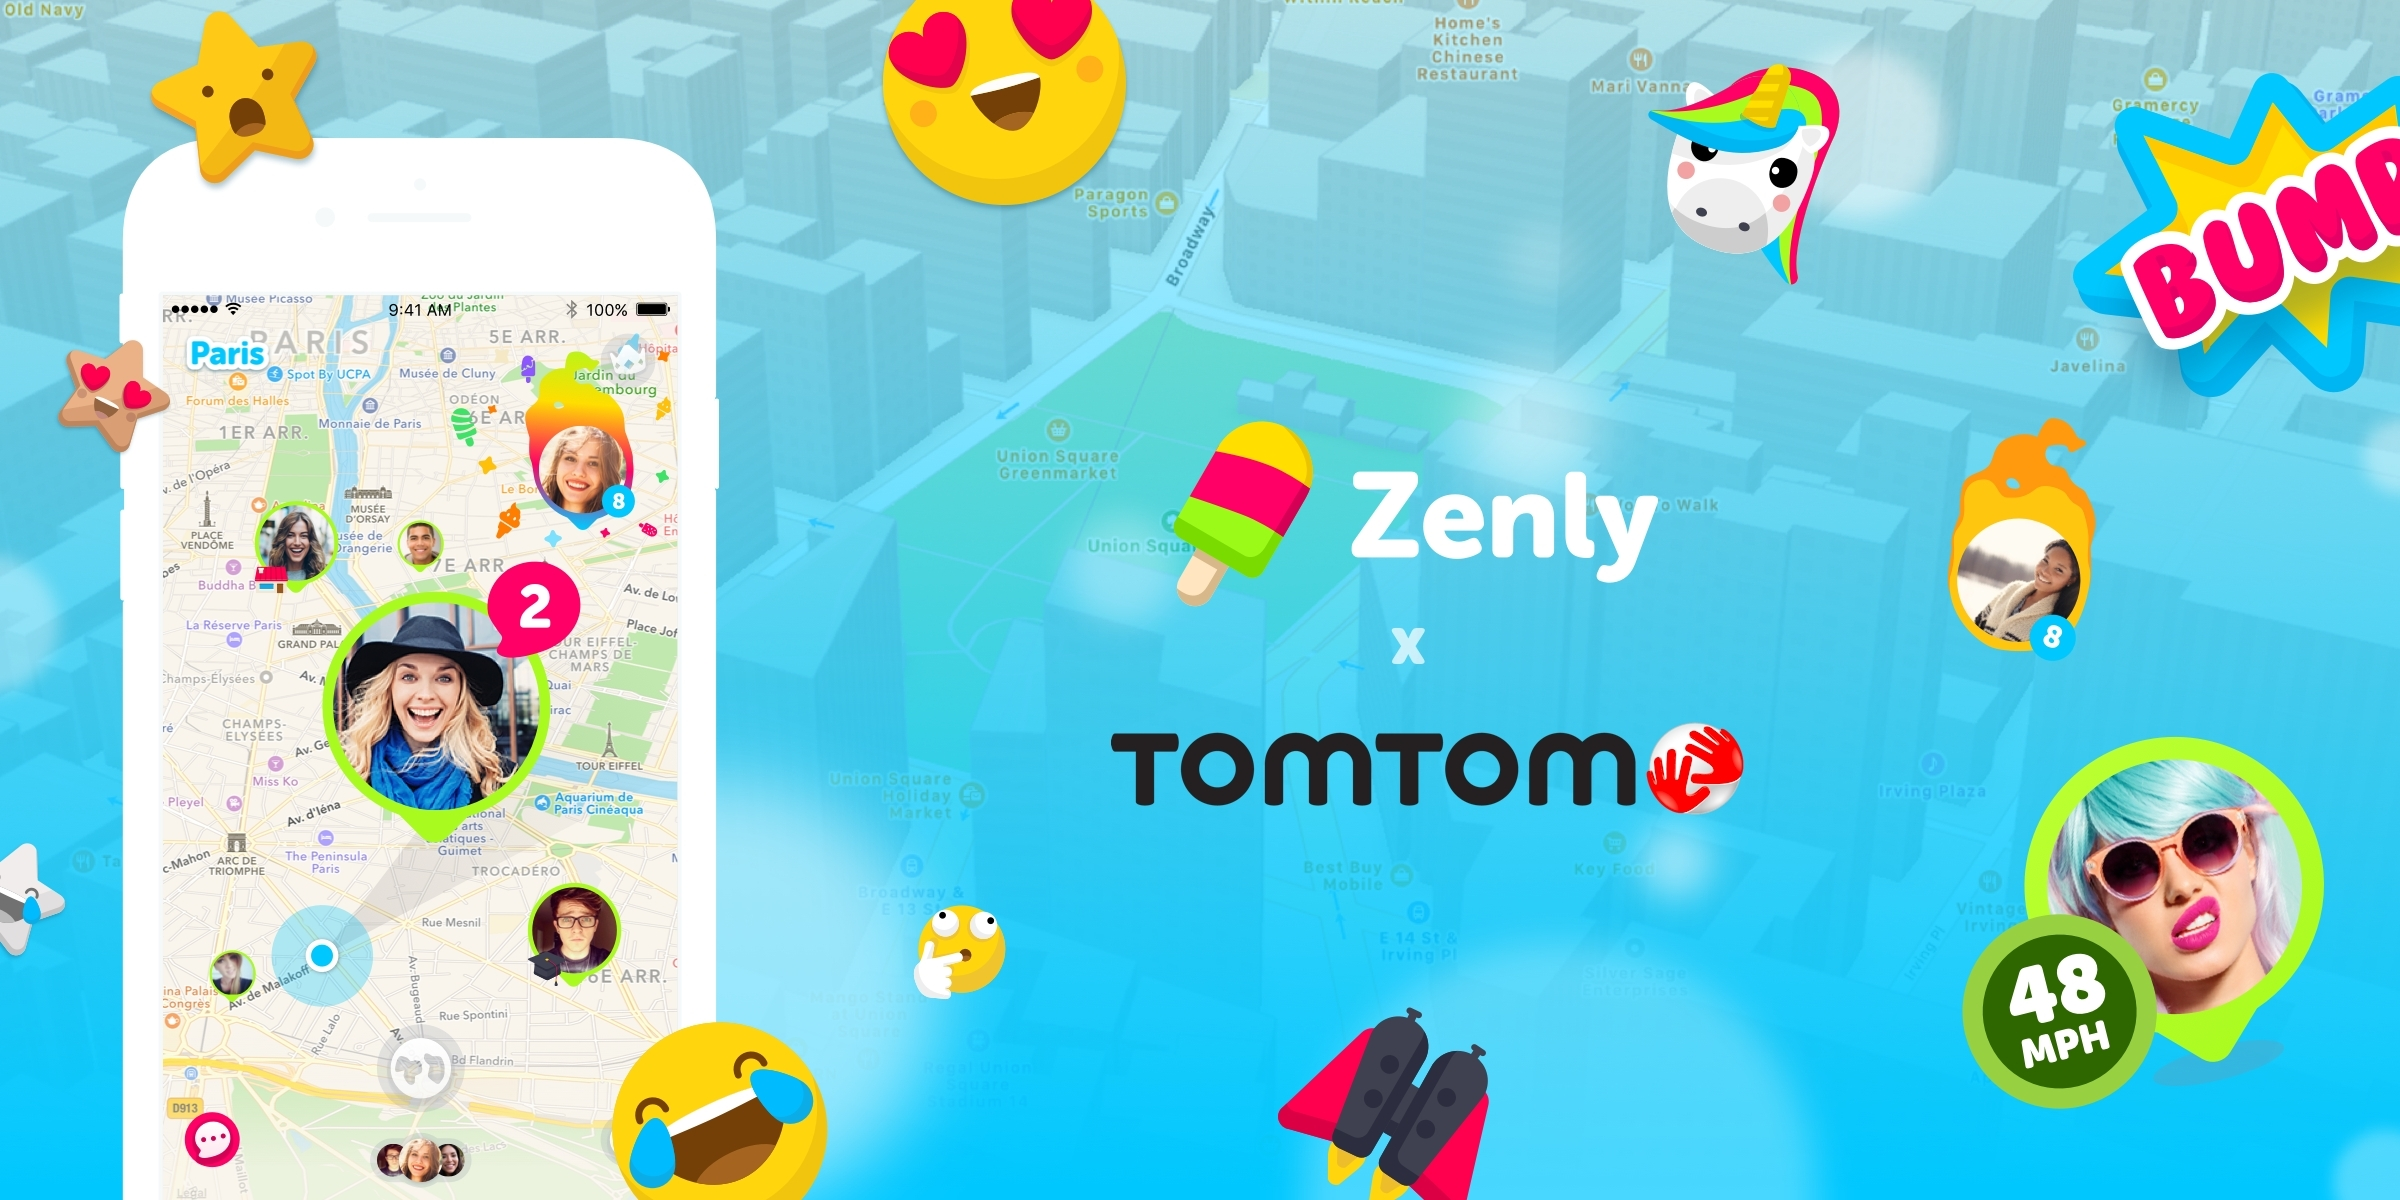 TomTom to Support Location Context Enhancements for Zenly